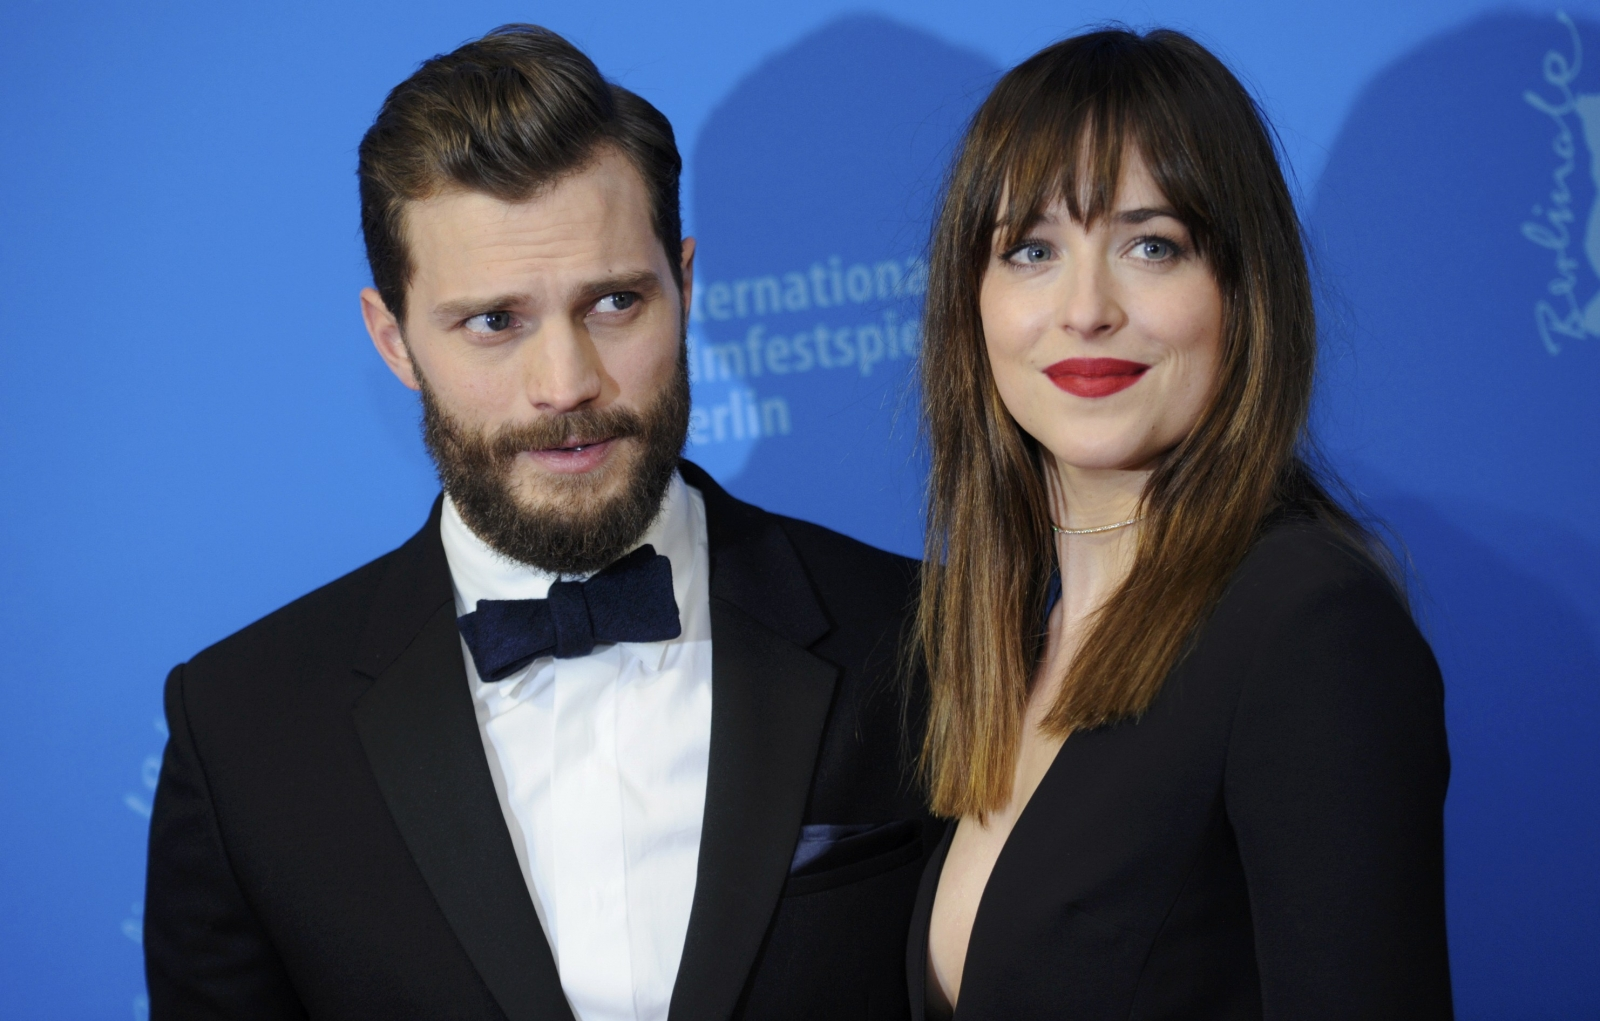 Jamie Dornand and Dakota Johnson in Fifty Shades of Grey